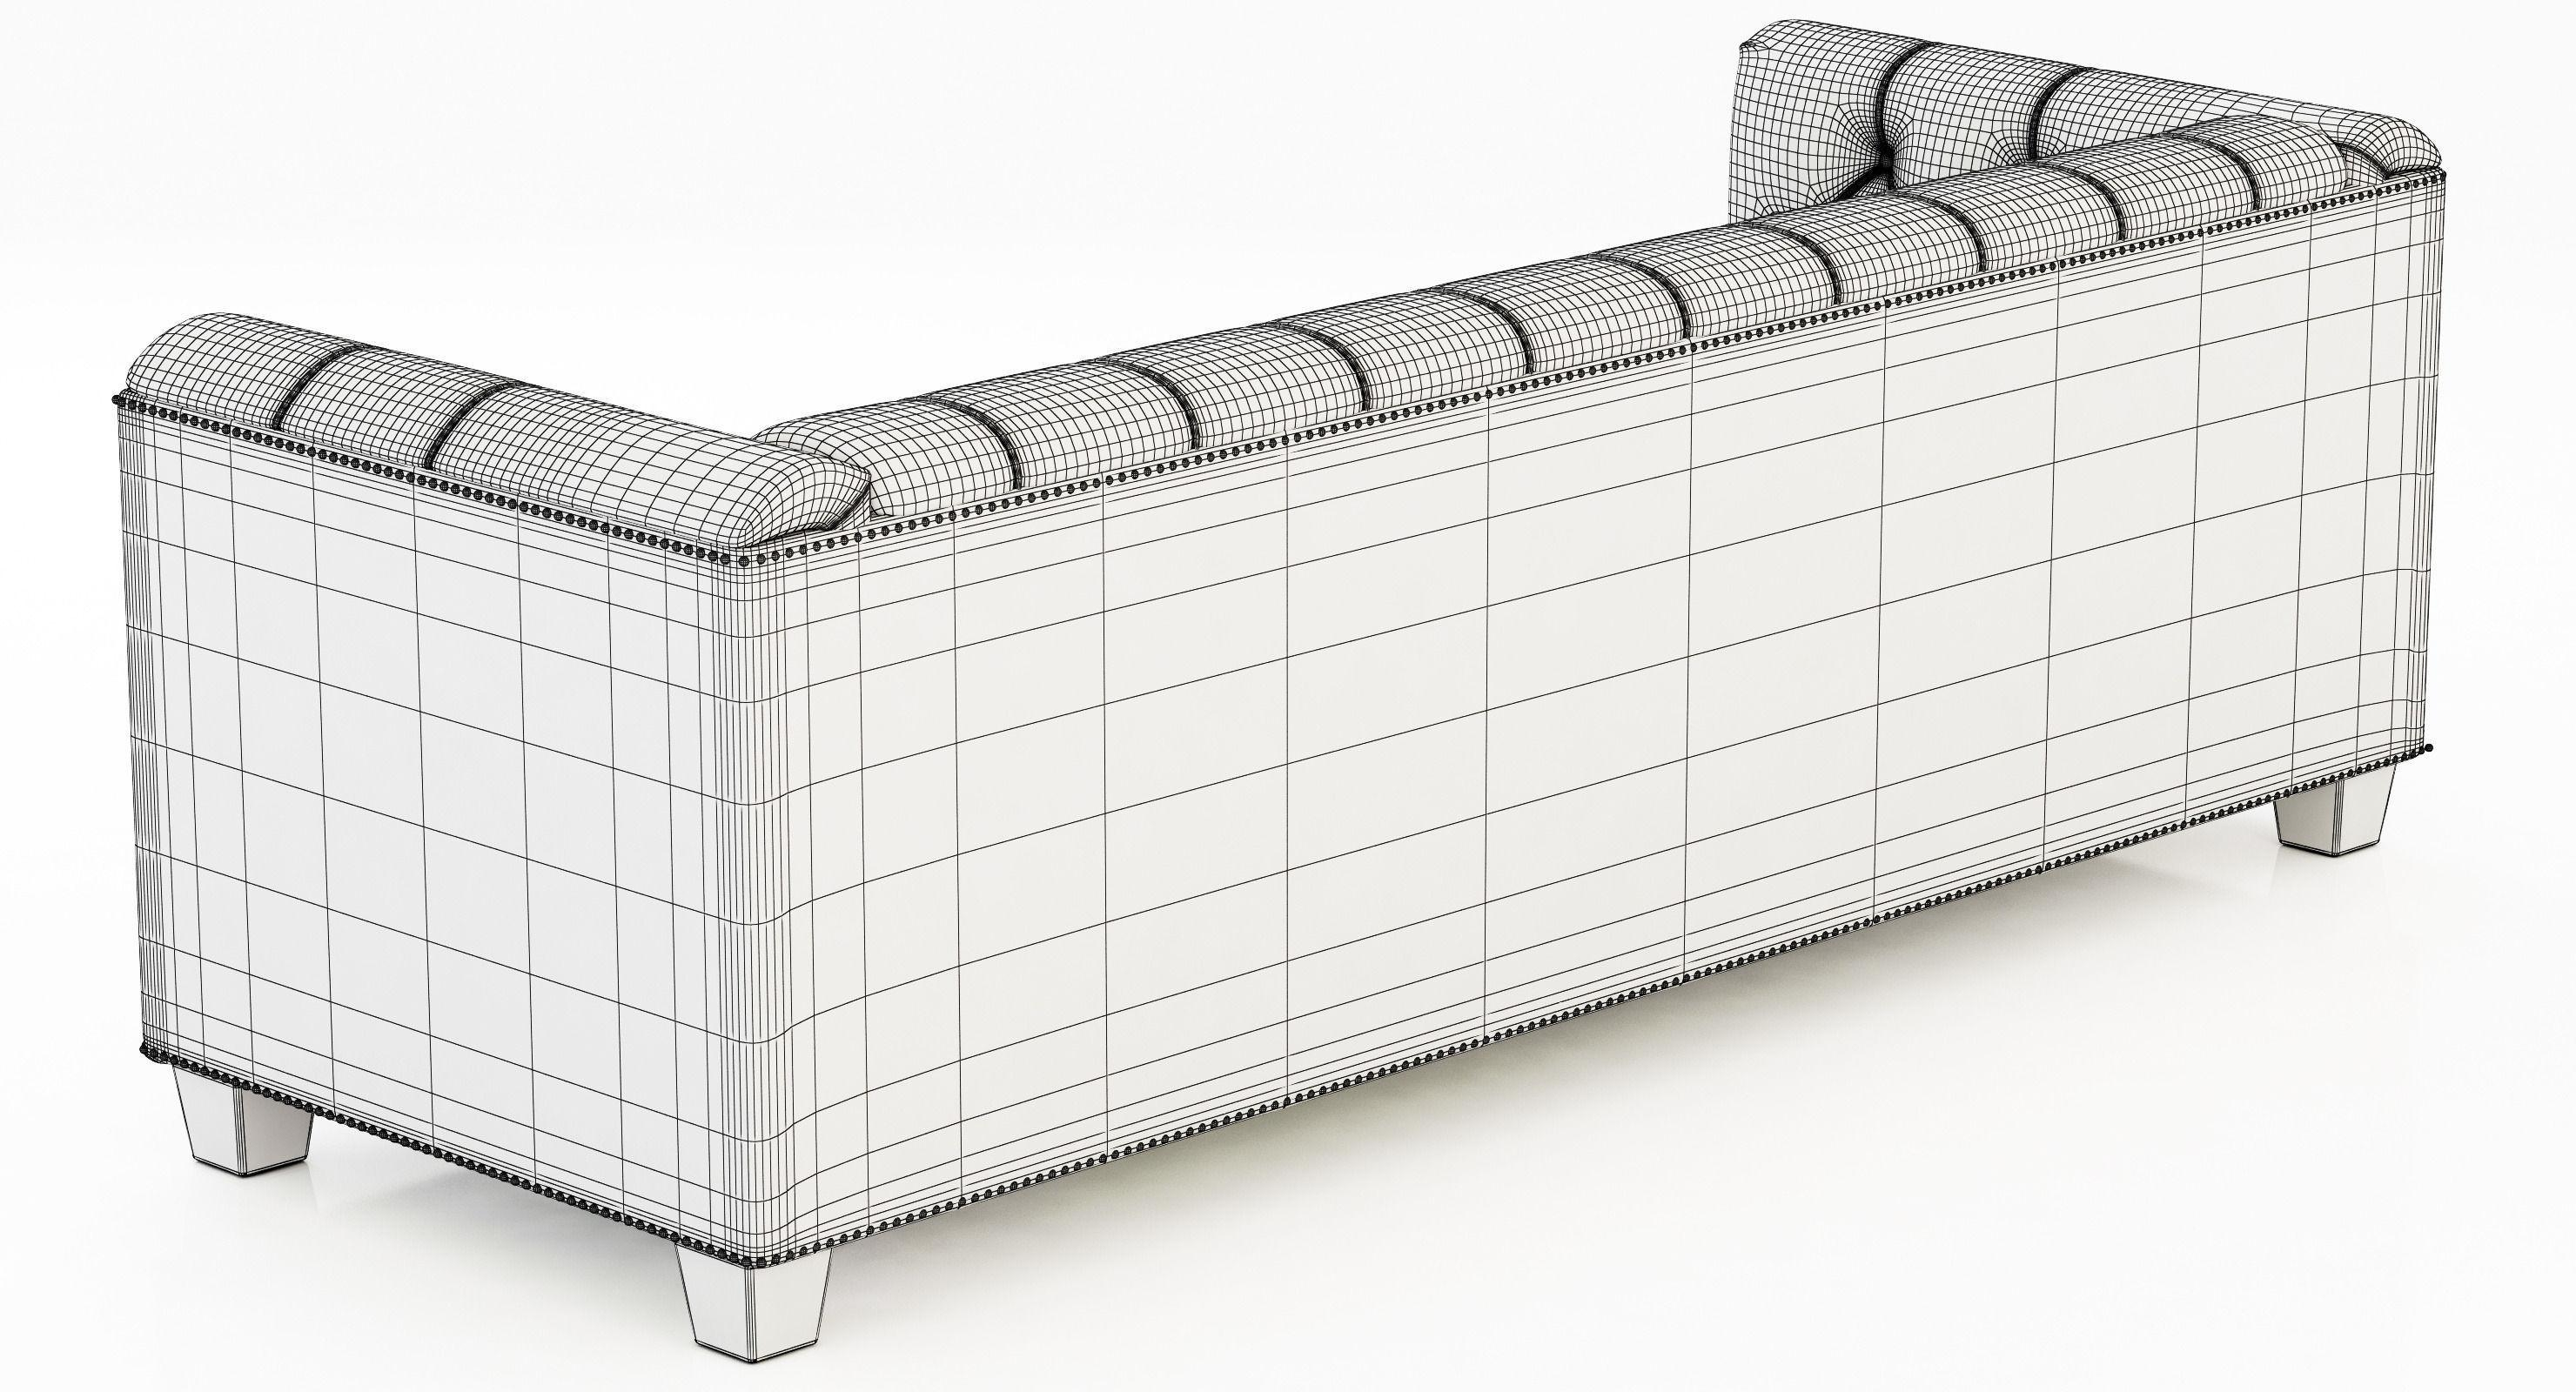 Restoration Hardware Savoy Leather Sofa 3D Model Regarding Savoy Leather Sofas (Image 11 of 20)